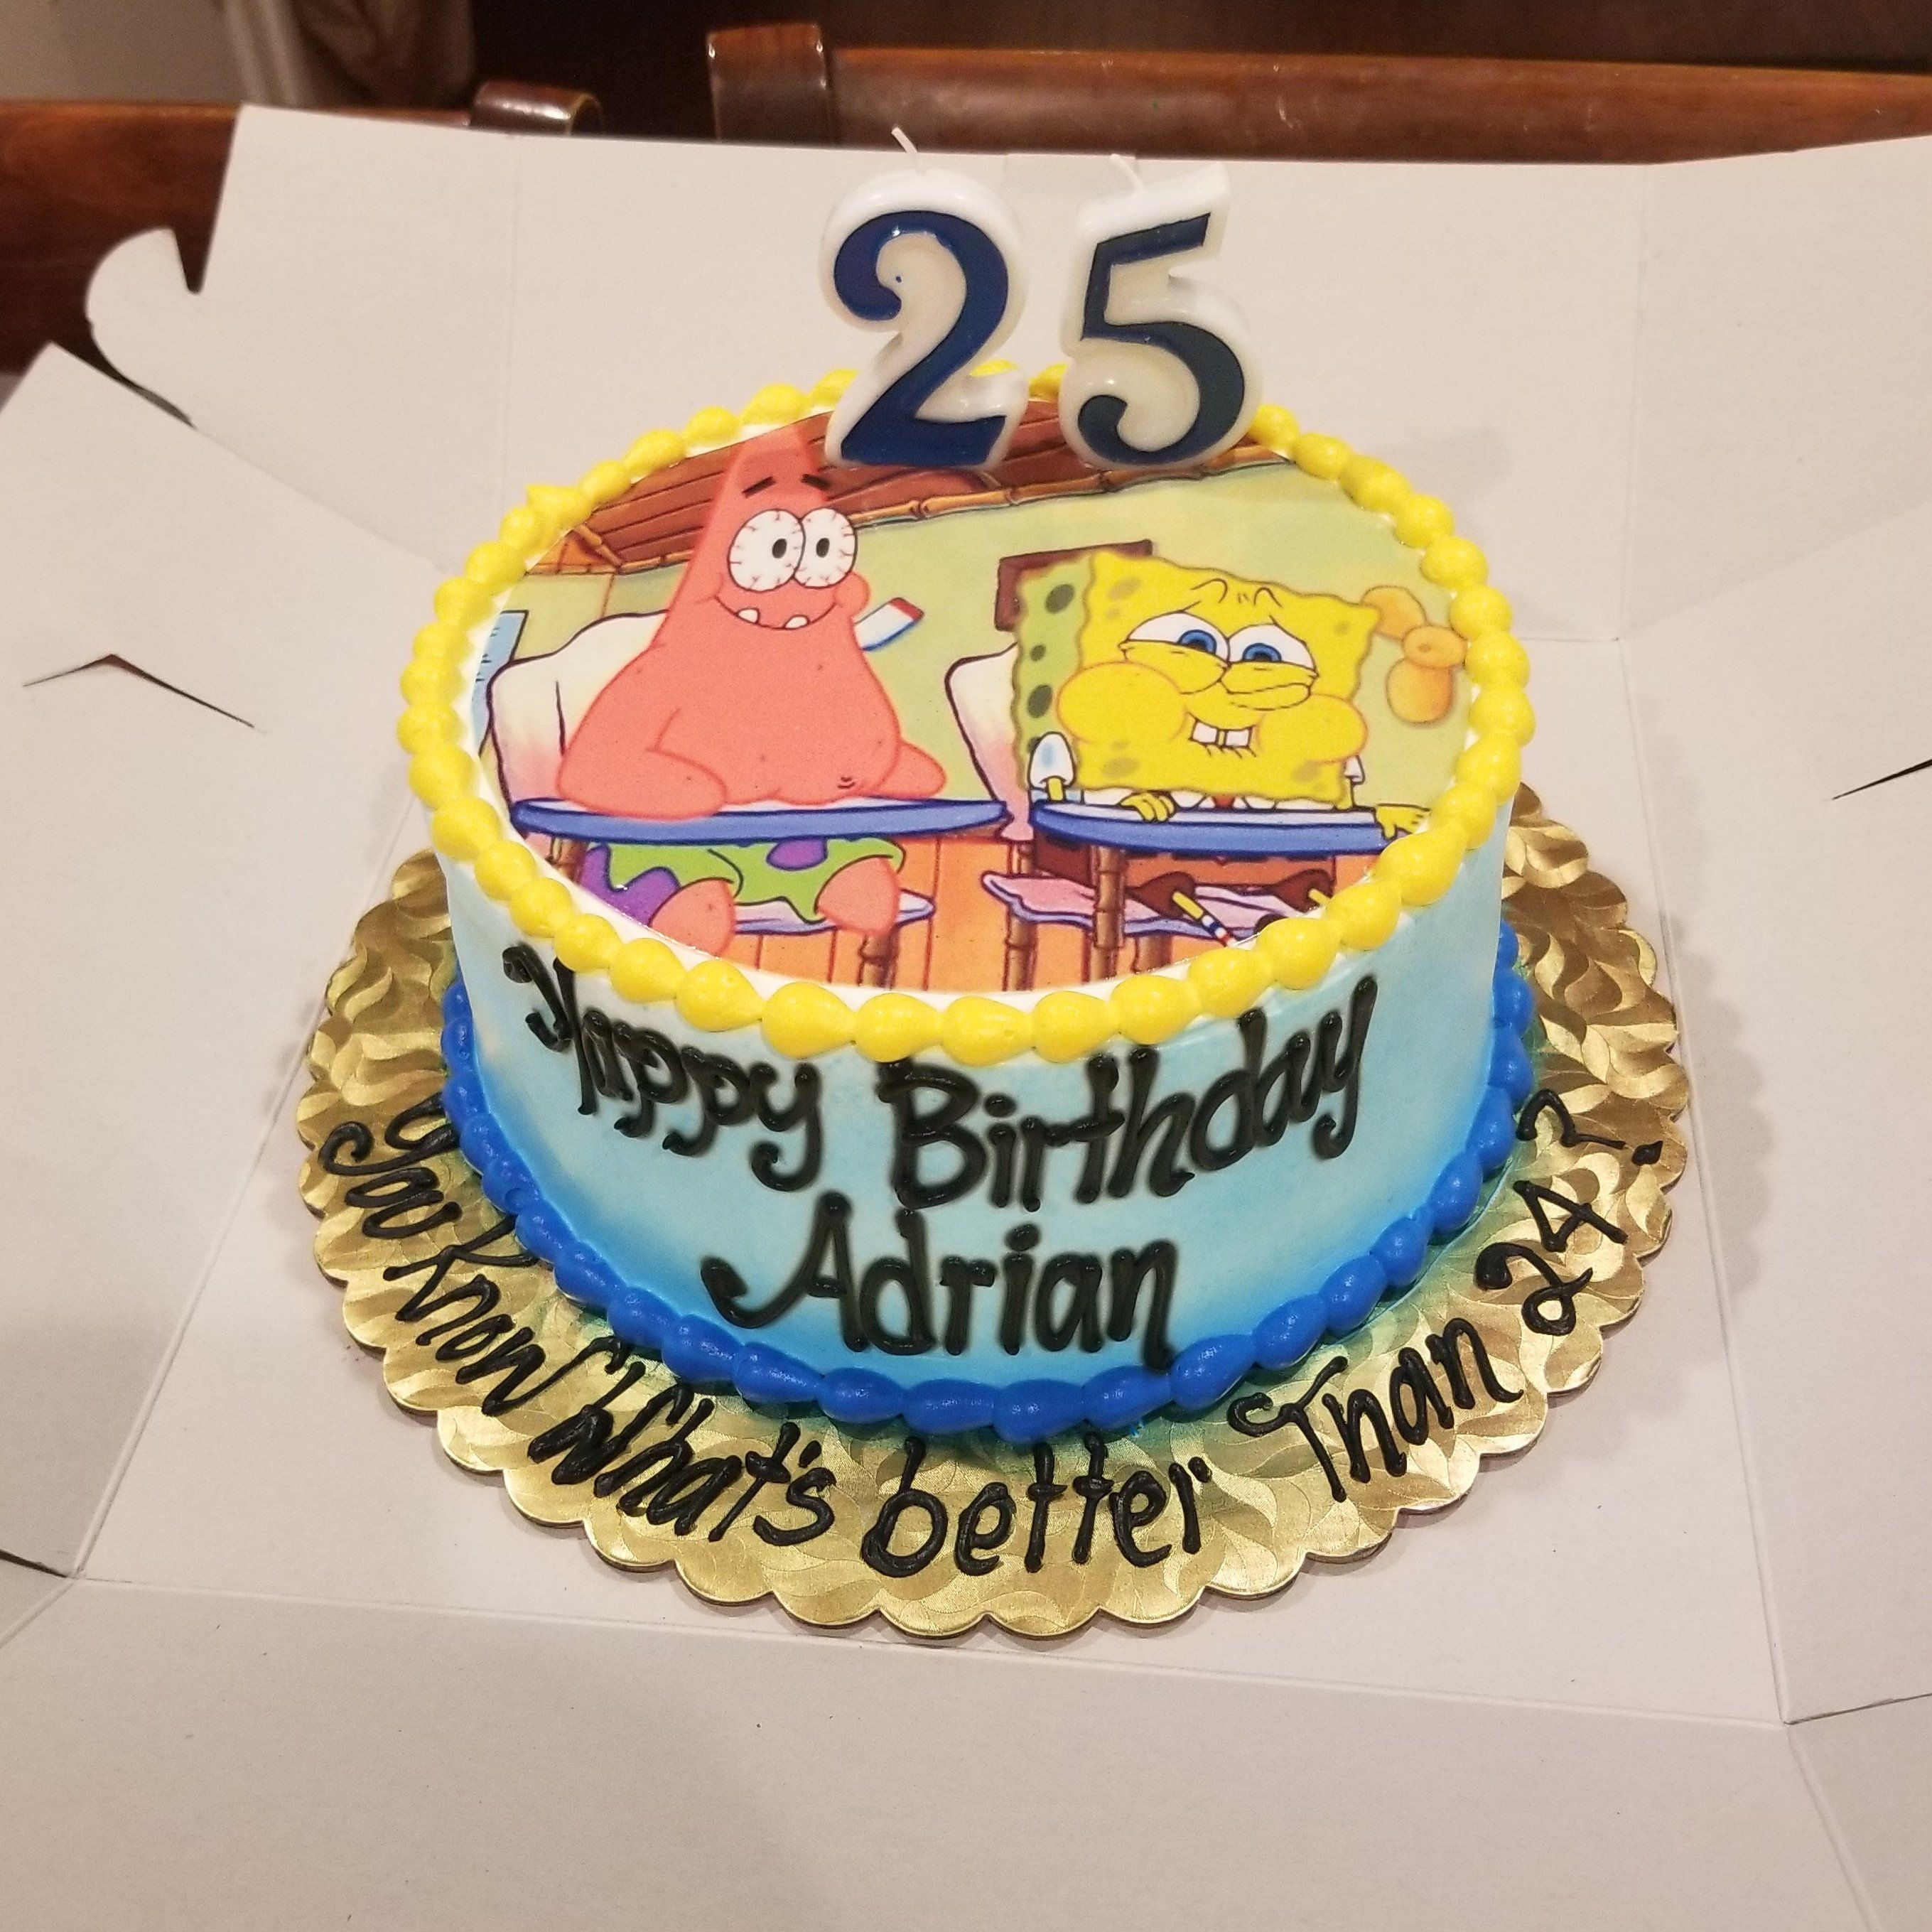 My birthday cake this year from my gf funny Cake